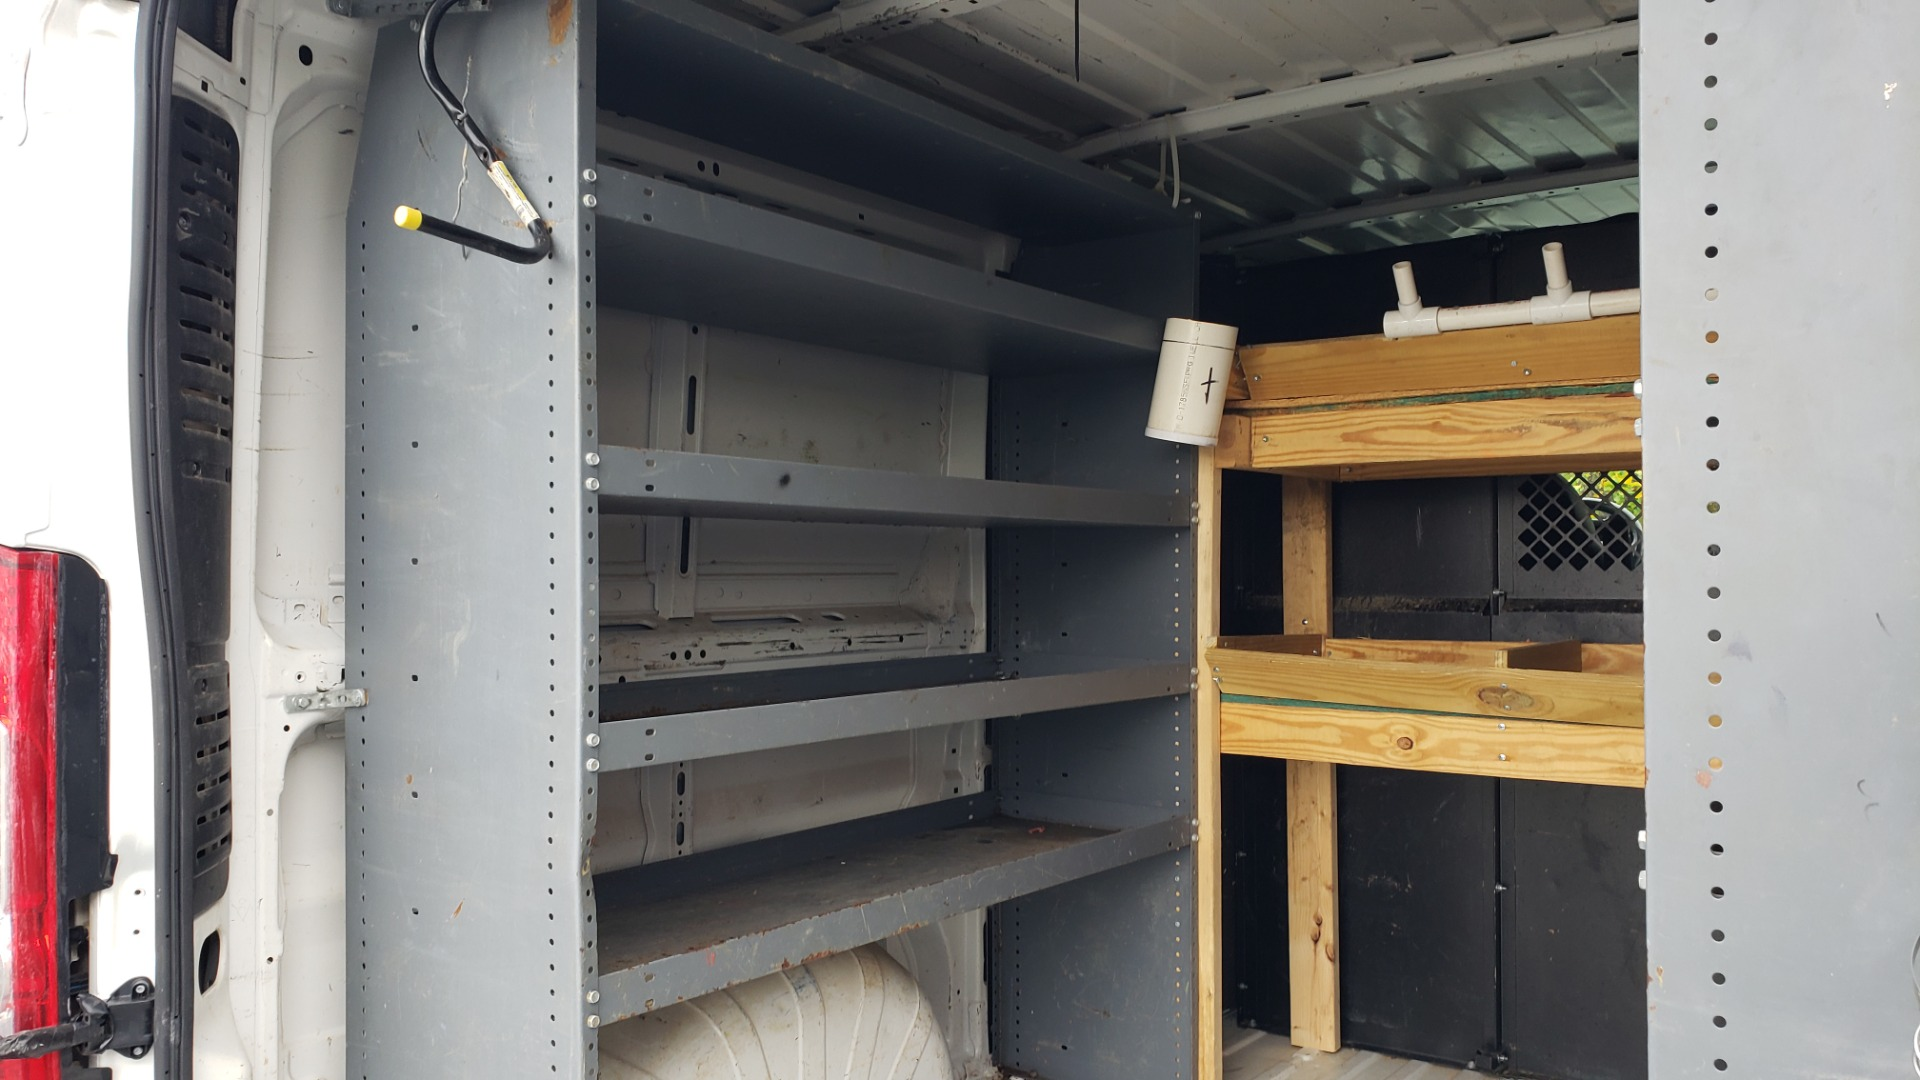 Used 2015 Ram PROMASTER CARGO VAN 136-INCH WB / LOW ROOF / LADDER RACK / INSIDE RACKS for sale Sold at Formula Imports in Charlotte NC 28227 56